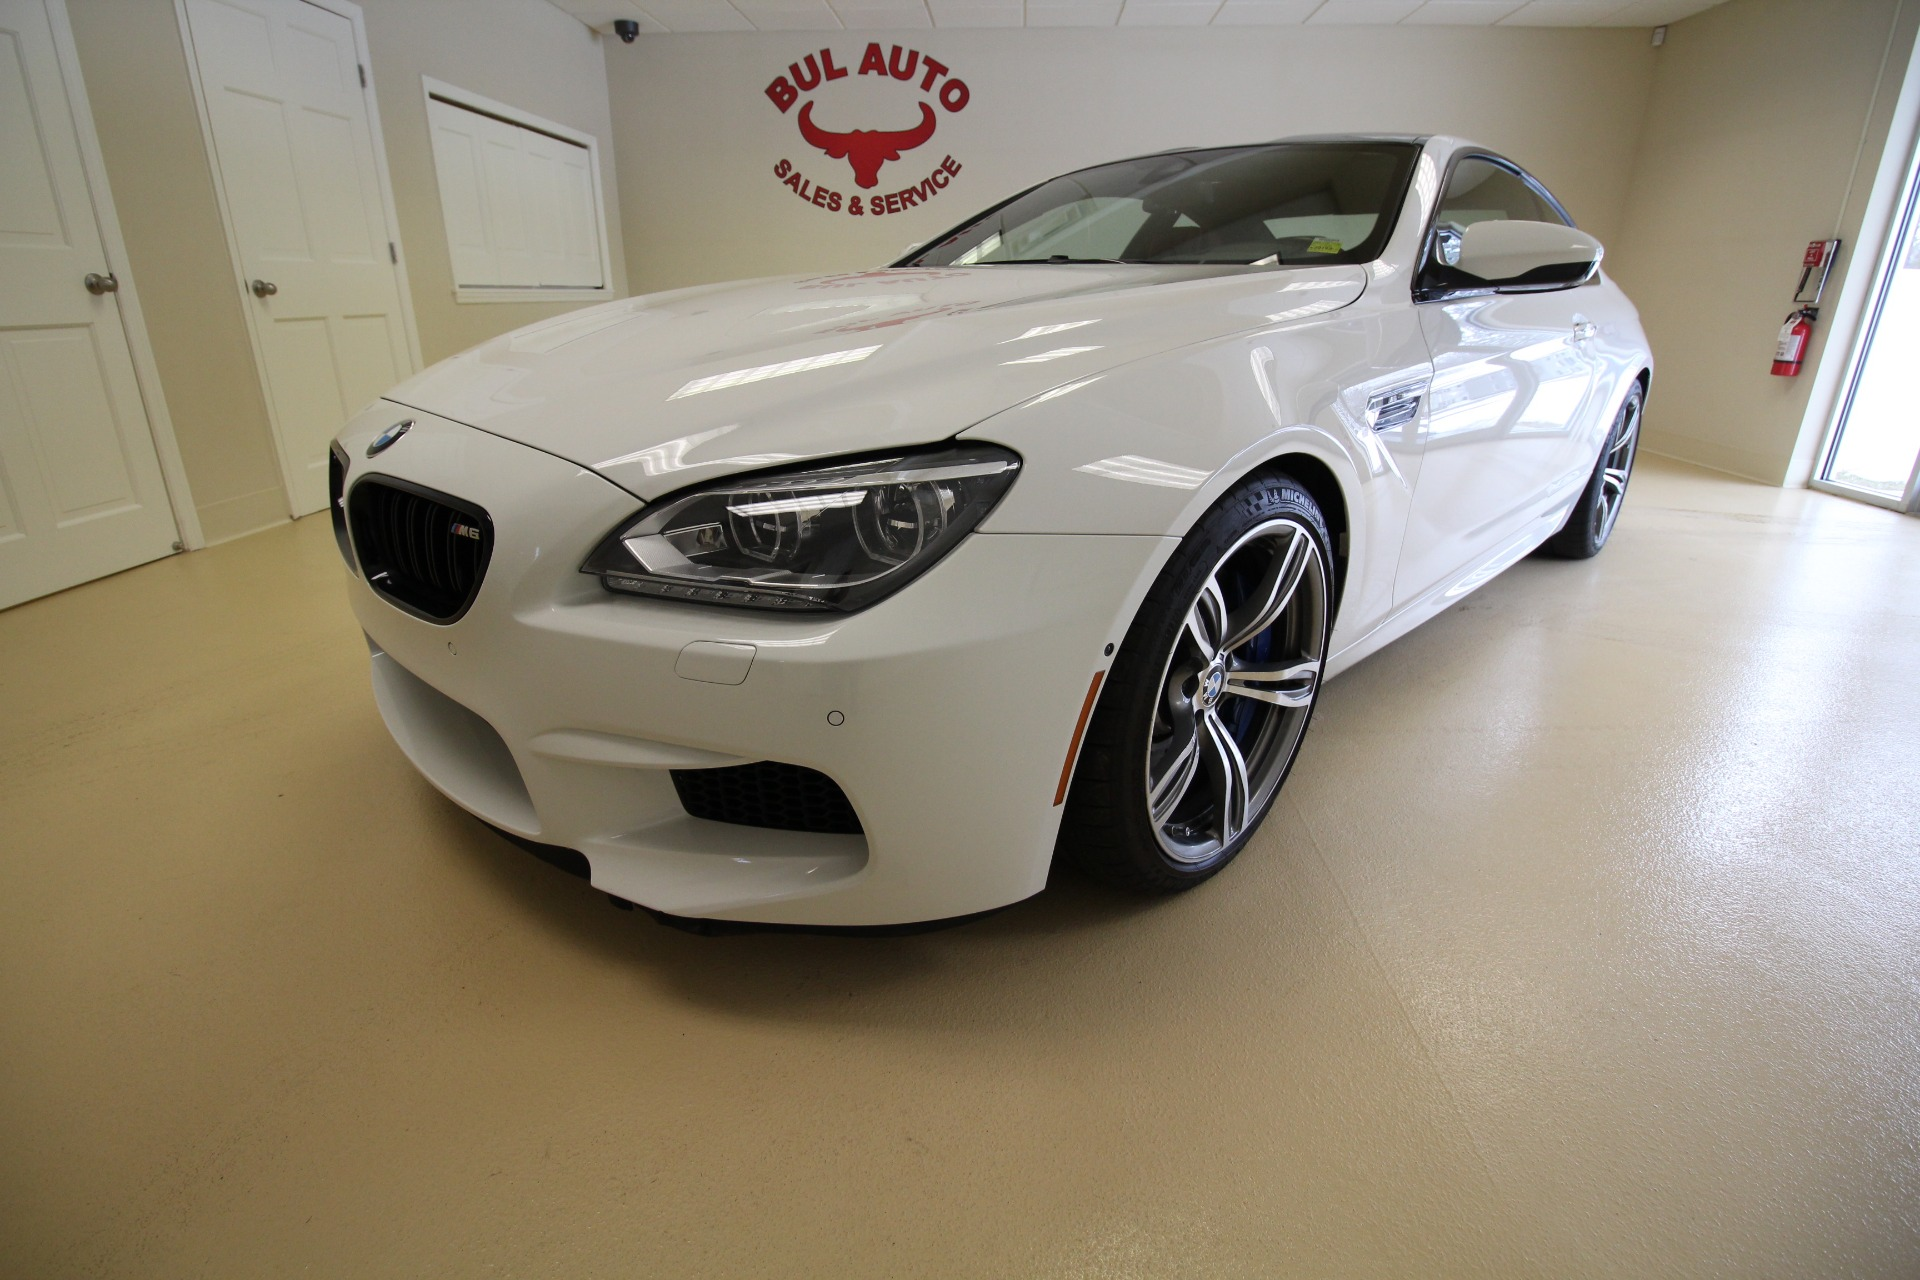 2014 bmw m6 coupe m competiotion msrp was 134425 stock 18045 for sale near albany ny ny. Black Bedroom Furniture Sets. Home Design Ideas